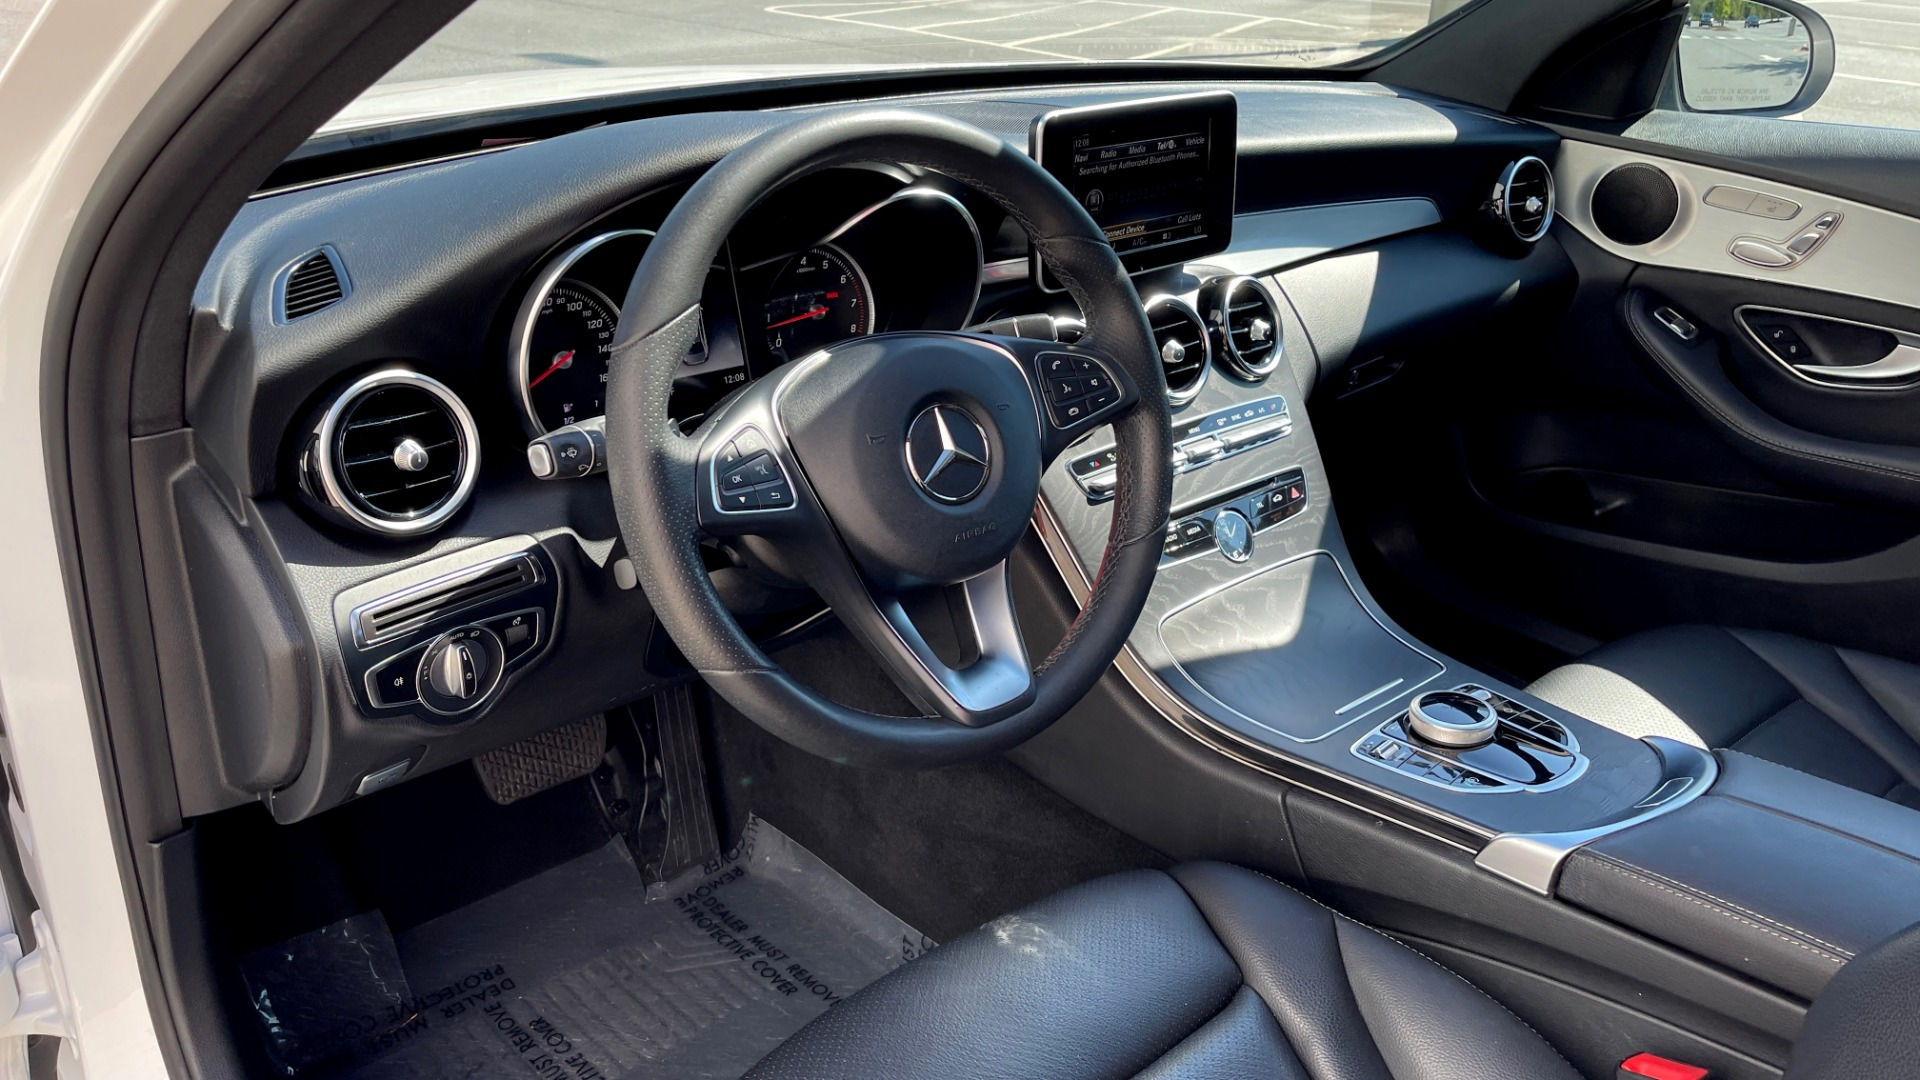 Used 2018 Mercedes-Benz C-CLASS C 300 PREMIUM / APPLE CARPLAY / KEYLESS-GO / SUNROOF / REARVIEW for sale $32,995 at Formula Imports in Charlotte NC 28227 23